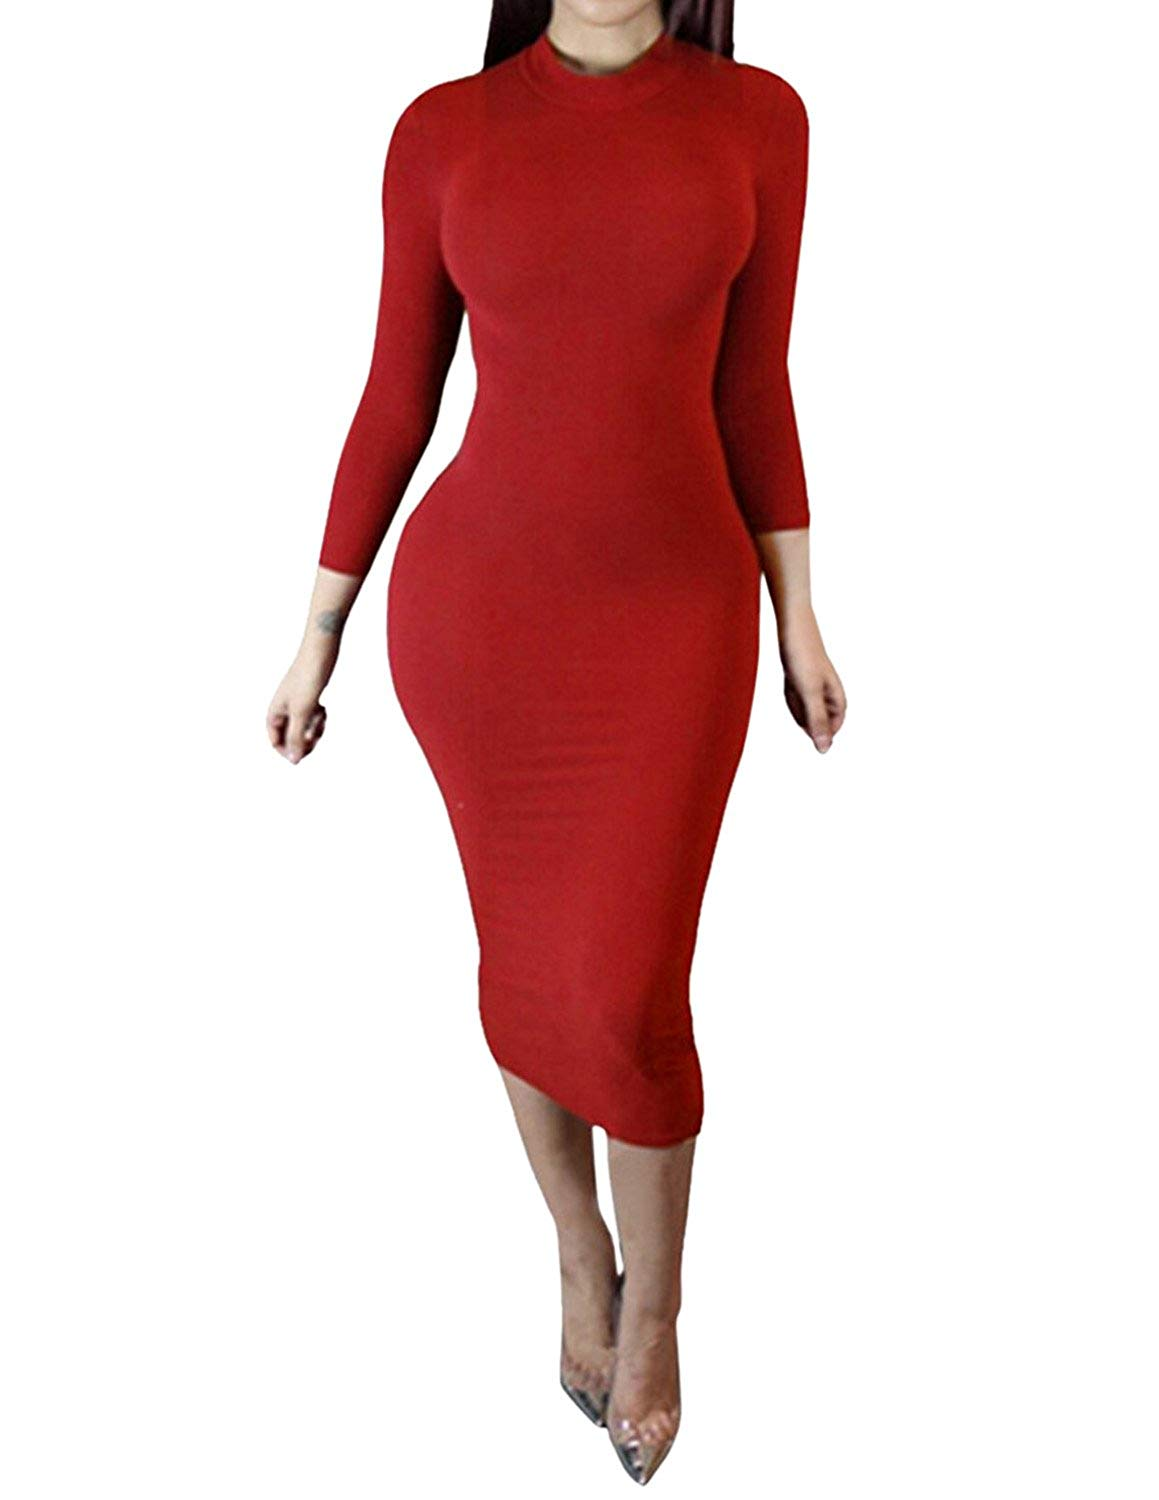 6e283e33d24 Dramaticbuying Women s Bodycon Midi Dress Turtleneck Long Sleeve Tight Club  Dress